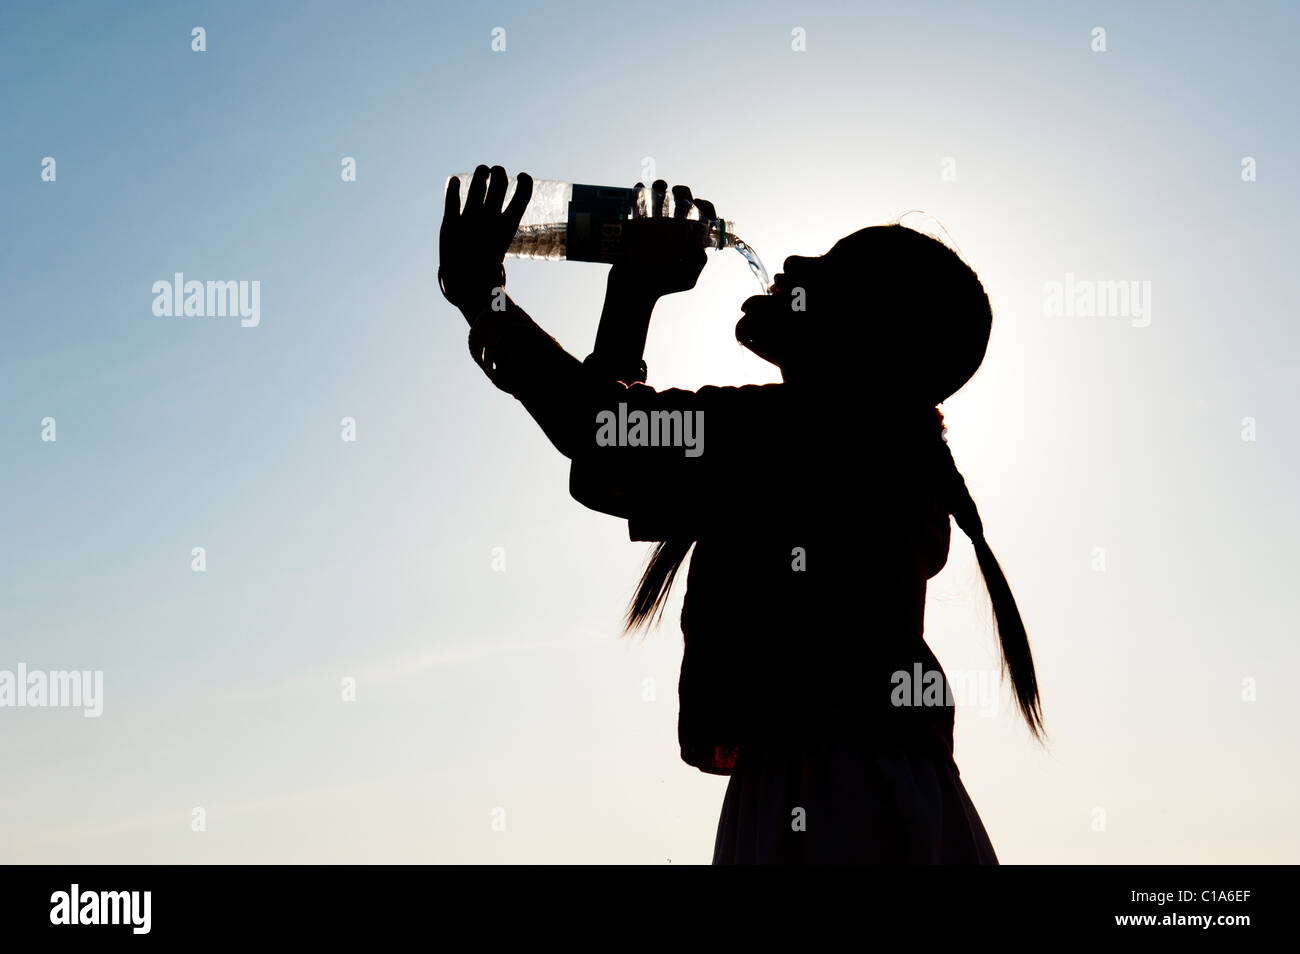 Indian girl drinking mineral water from plastic water bottle. India. Silhouette Stock Photo